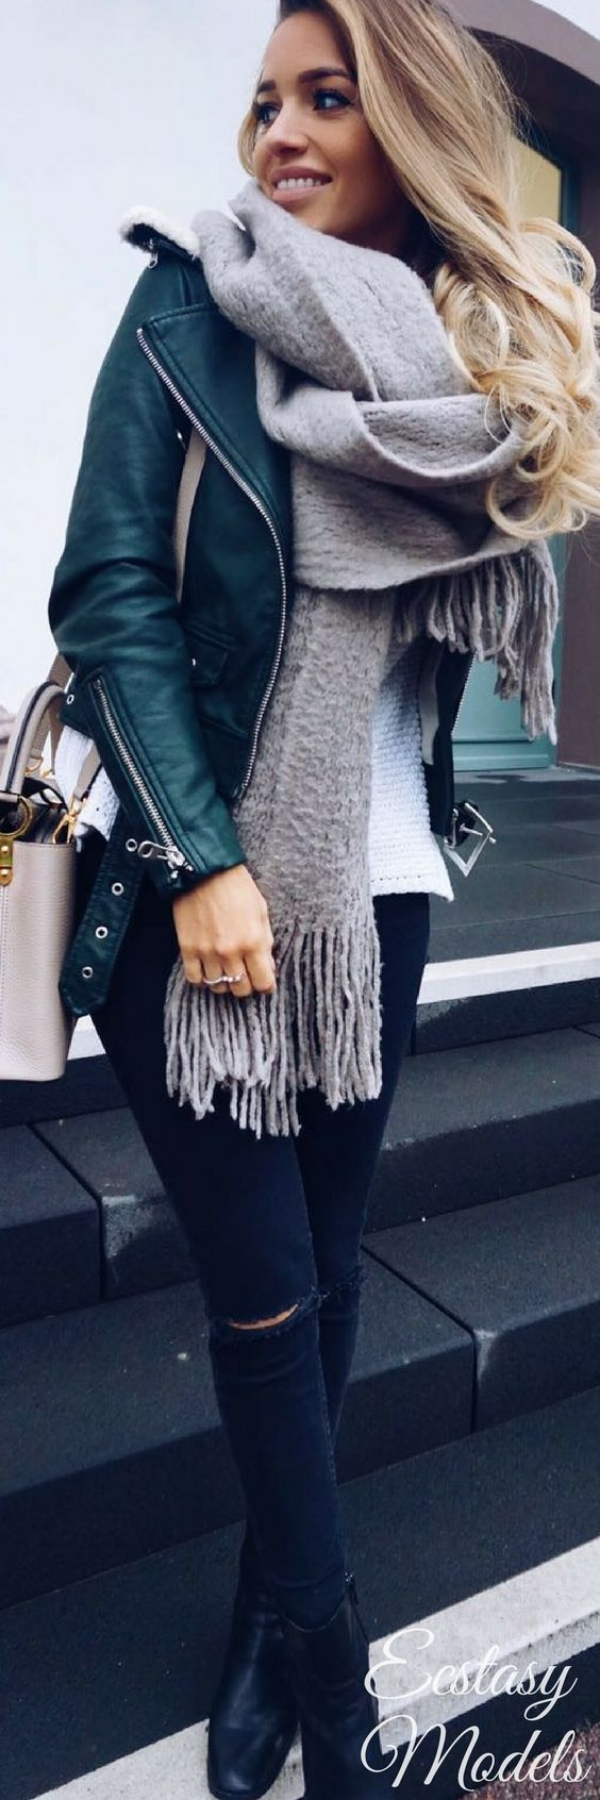 Autumn-Fashion-Outfits-Ideas-27